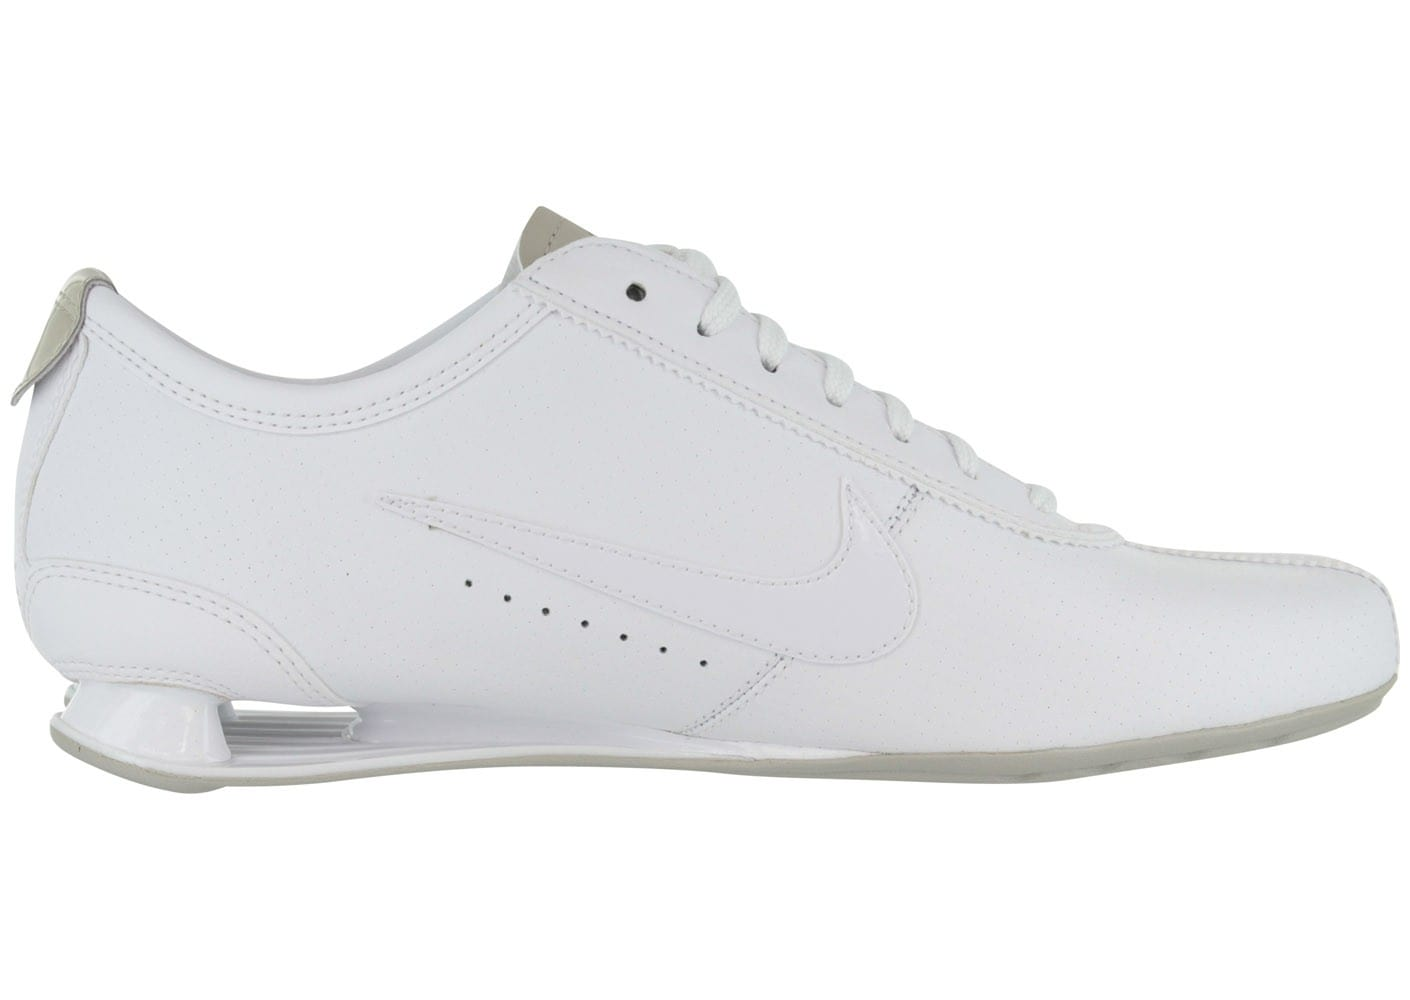 Nike Shox Rivalry Homme Blanche